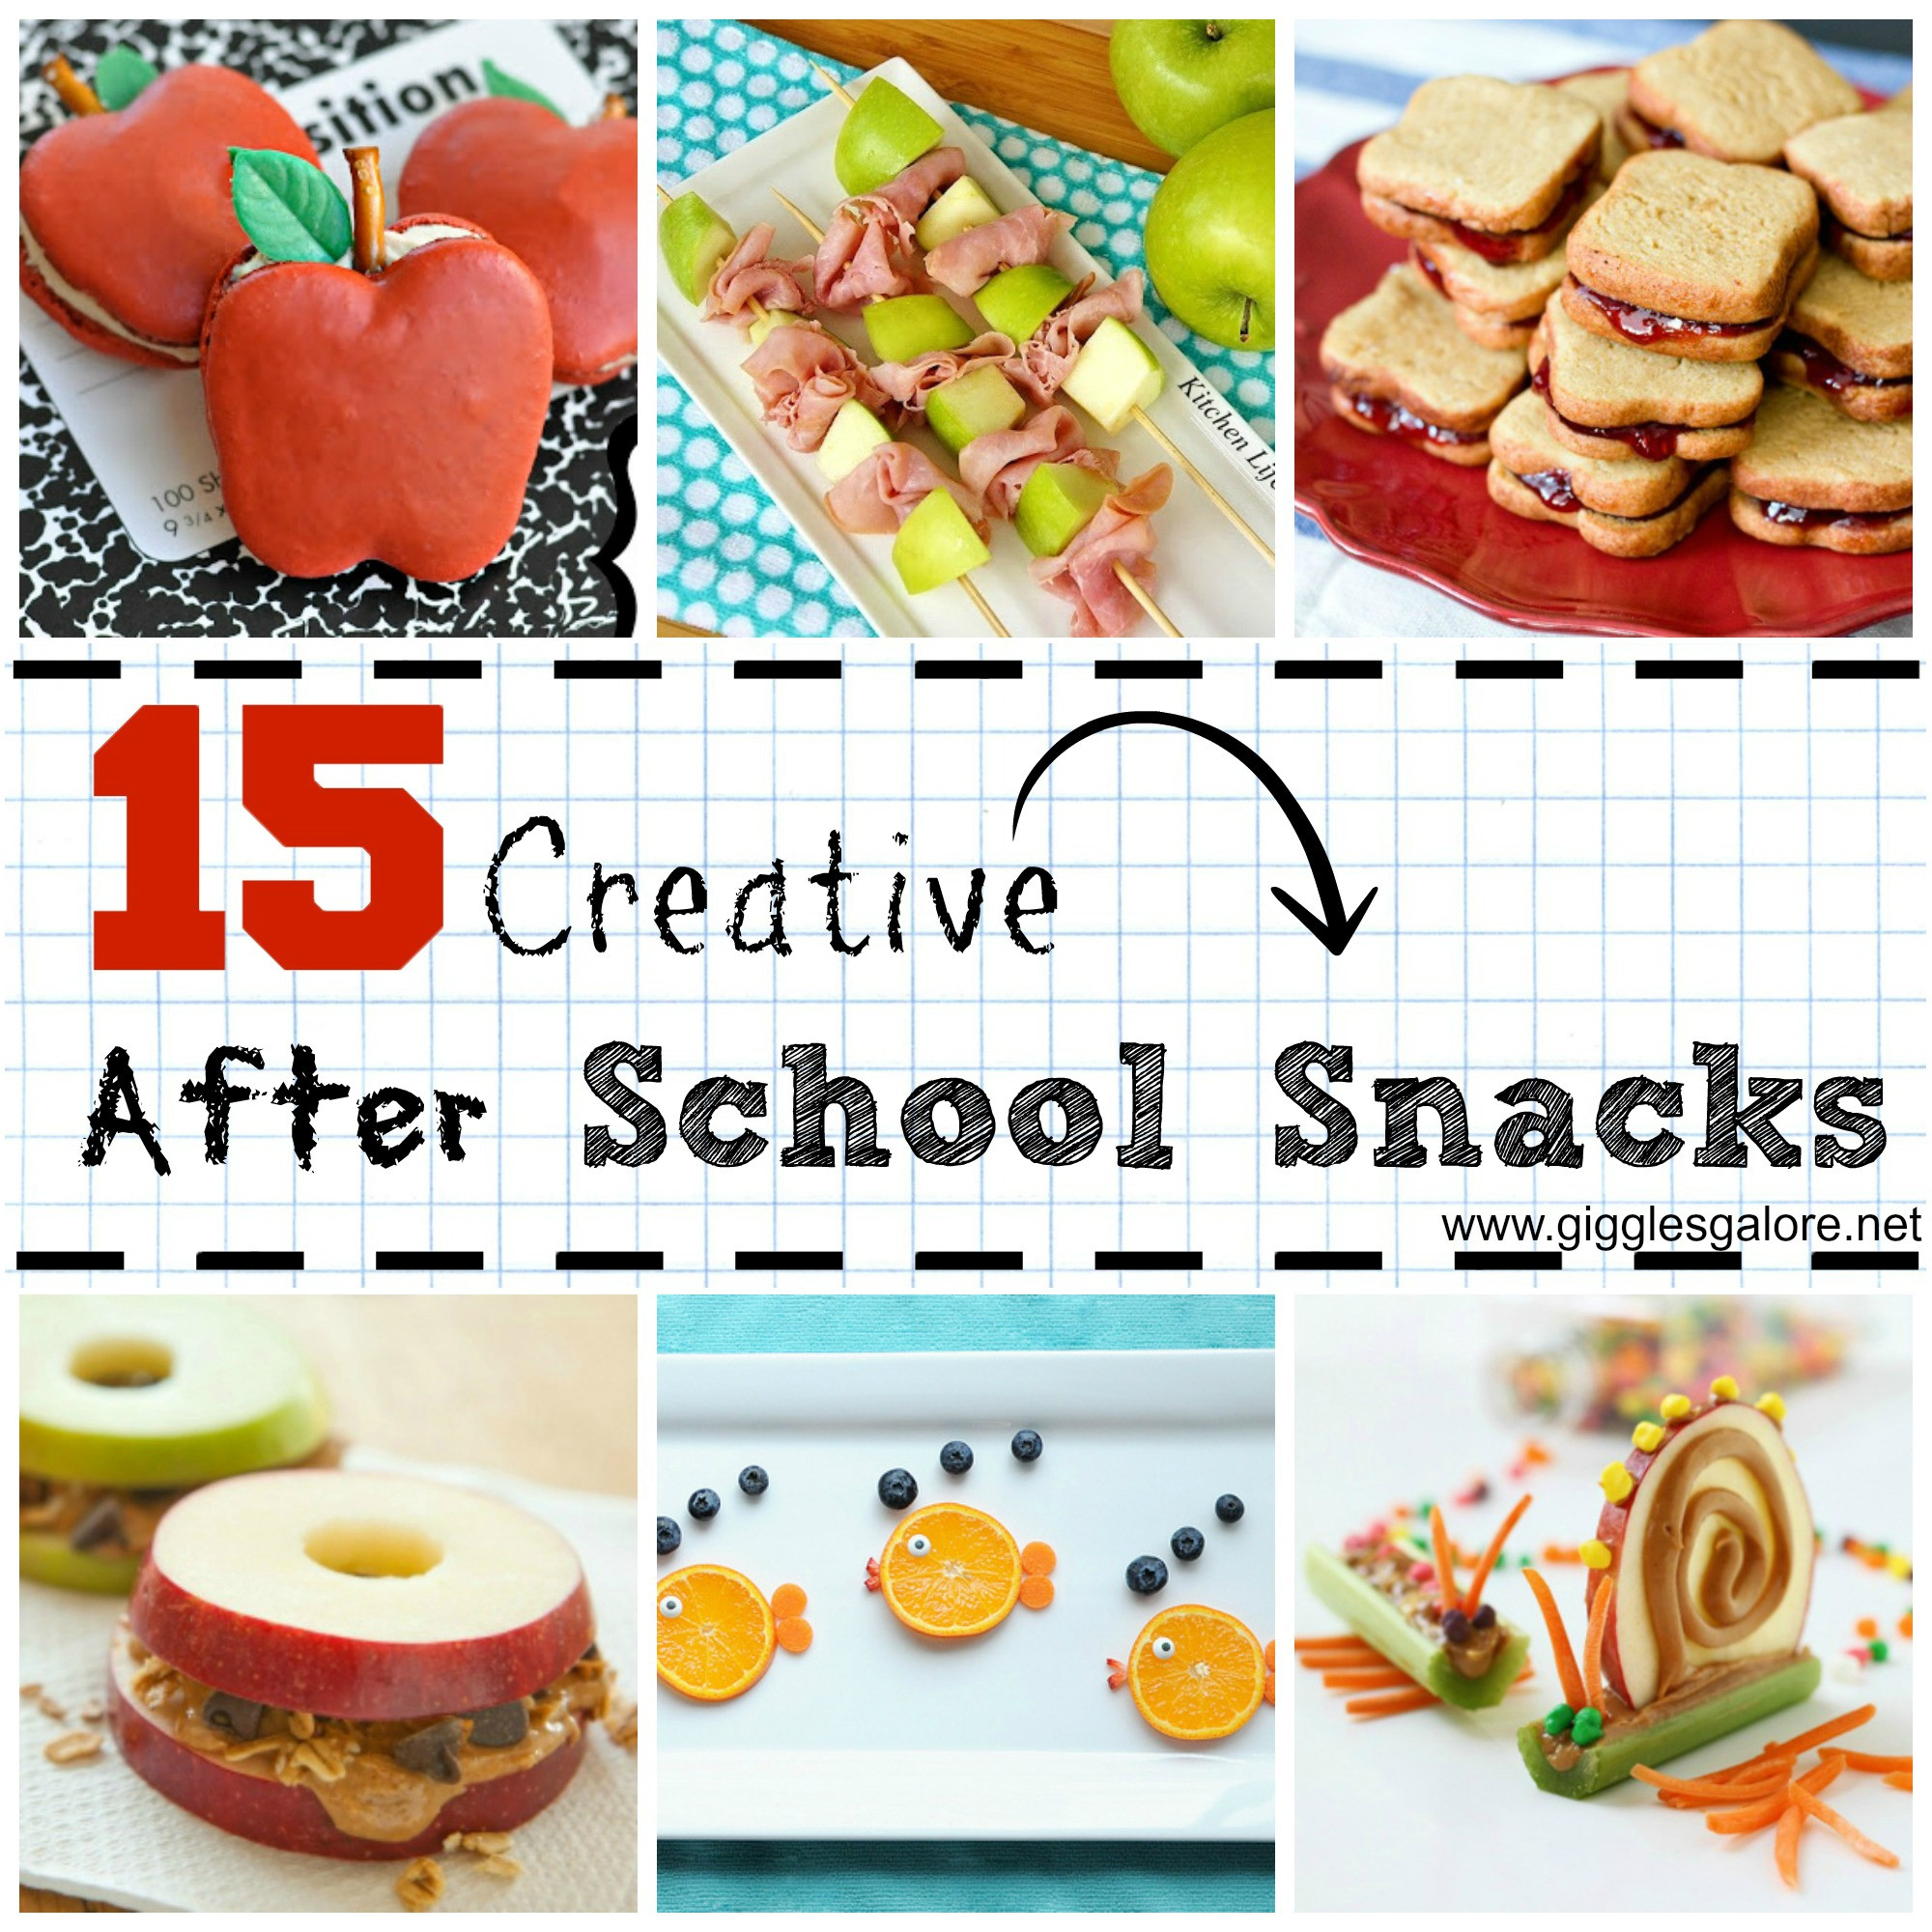 Creative Healthy Snacks  15 Creative After School Snacks Giggles Galore